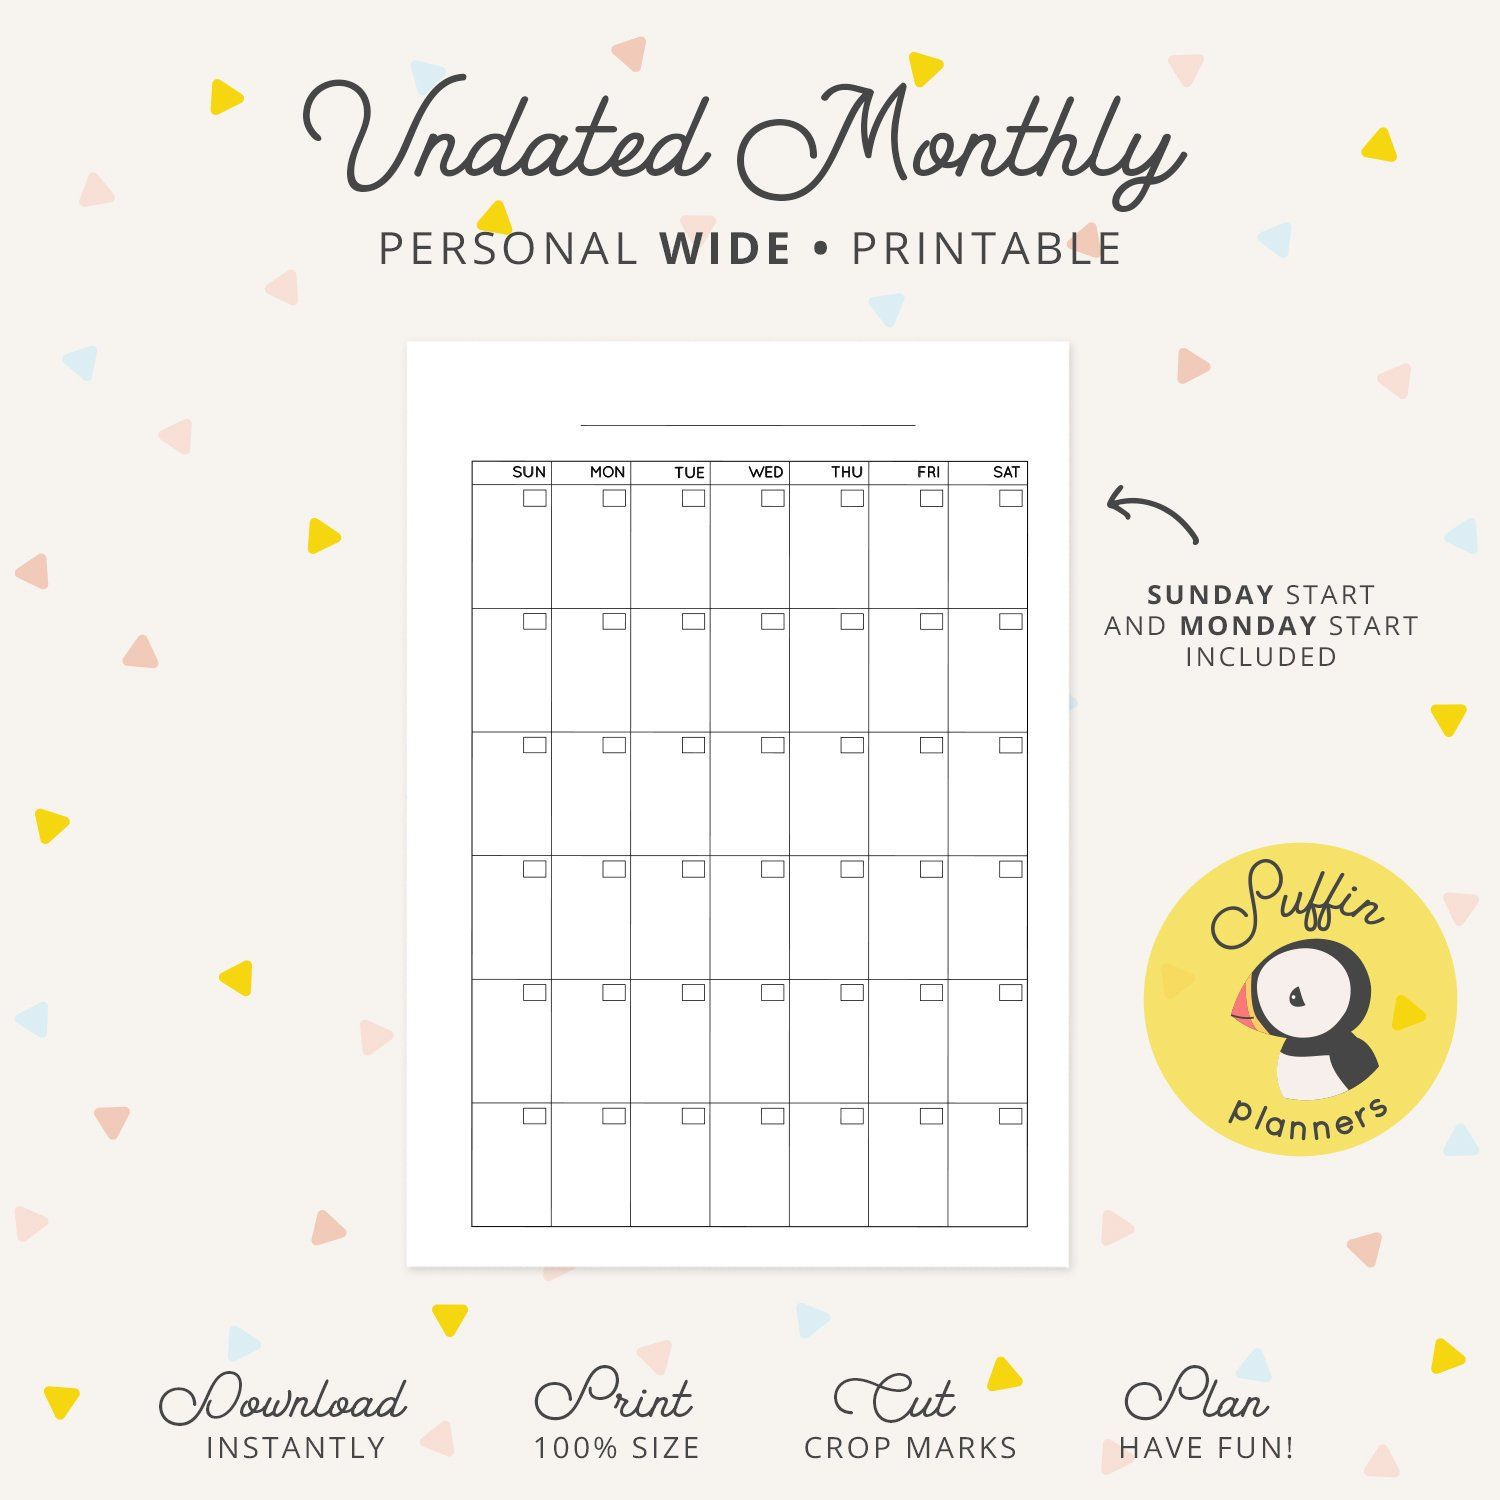 Undated Monthly Calendar Personal WIDE Ring Printable